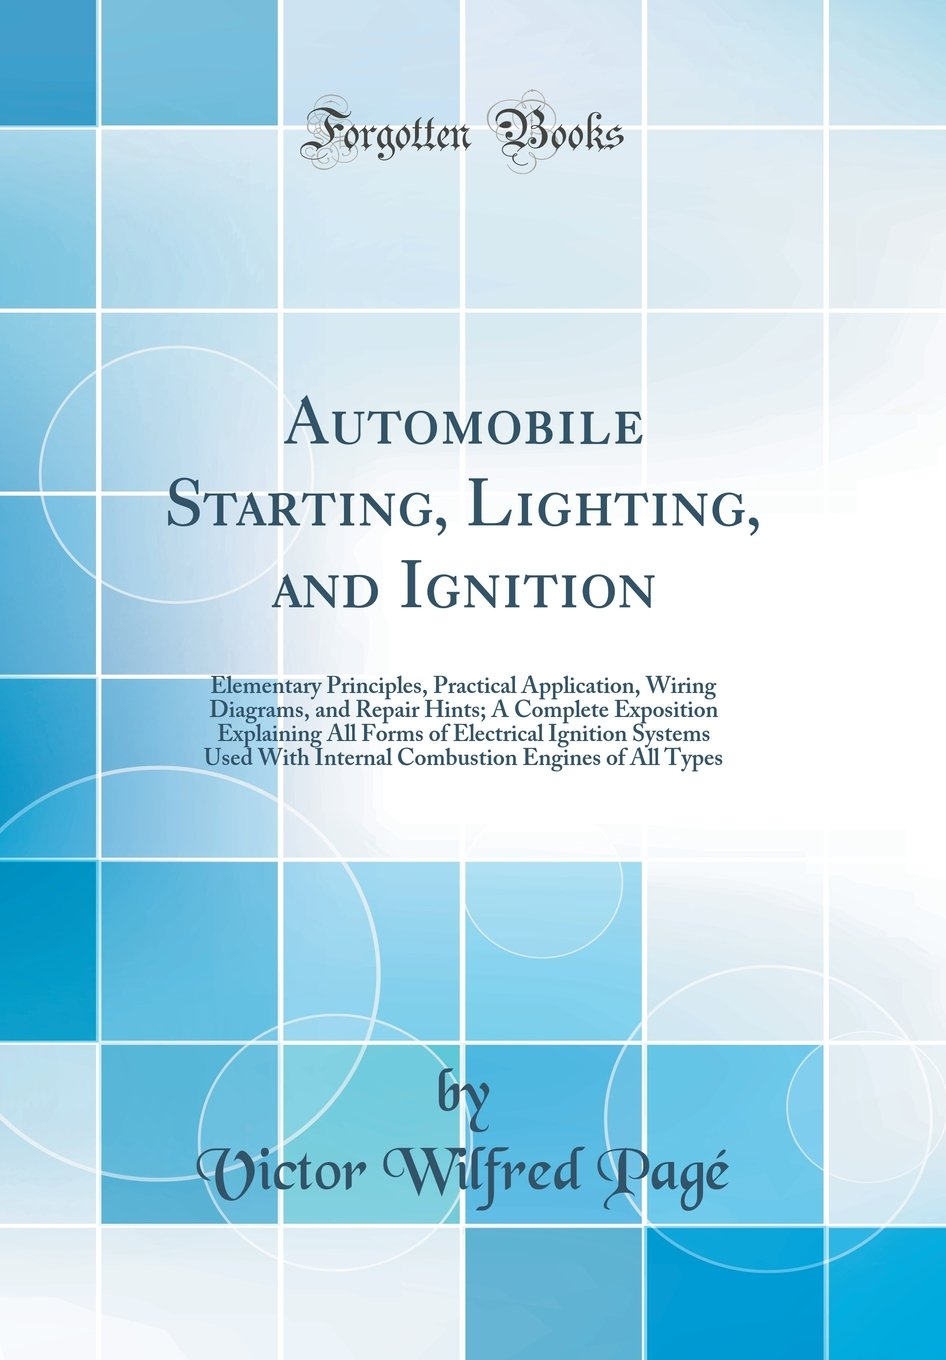 automobile starting, lighting, and ignition: elementary principles,  practical application, wiring diagrams, and repair hints